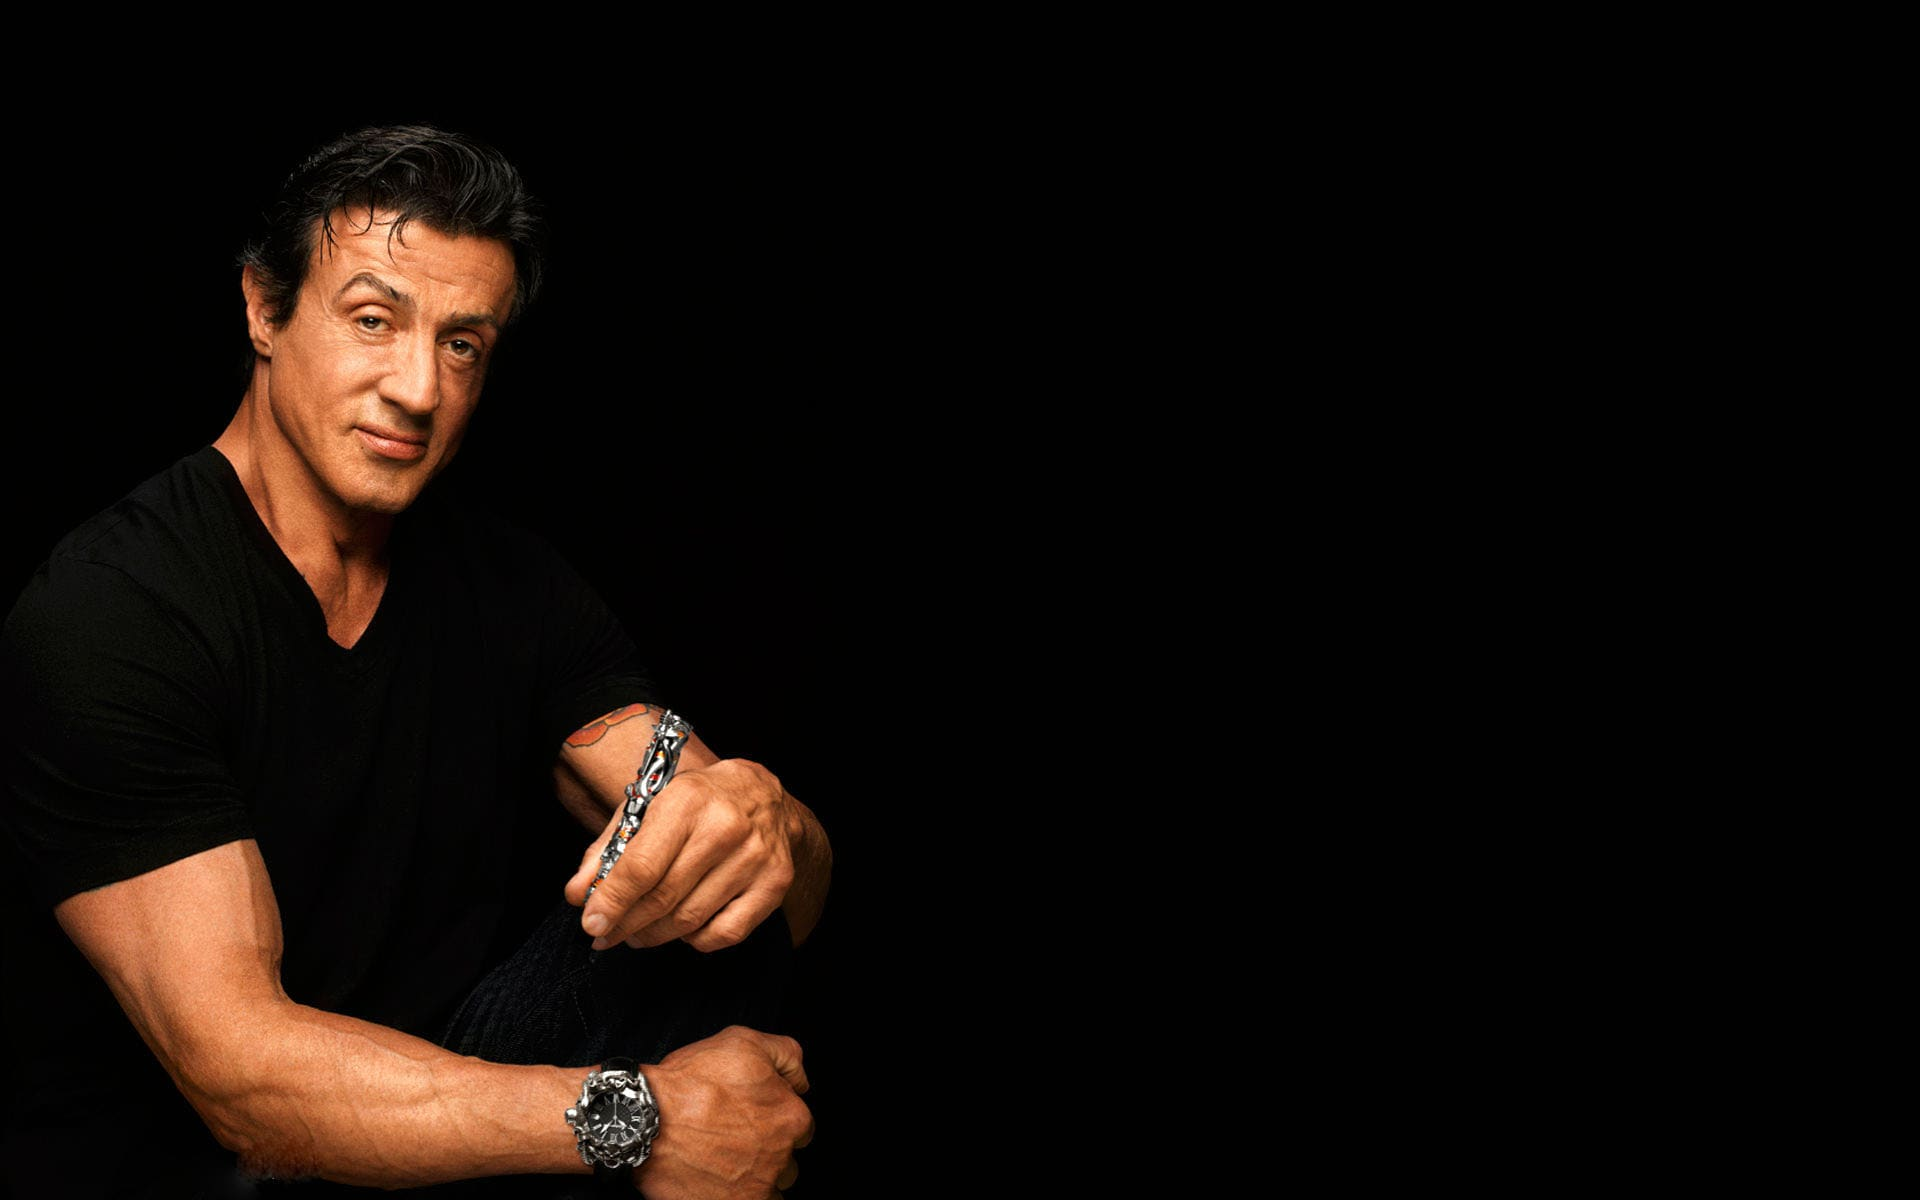 1920x1200 - Sylvester Stallone Wallpapers 1